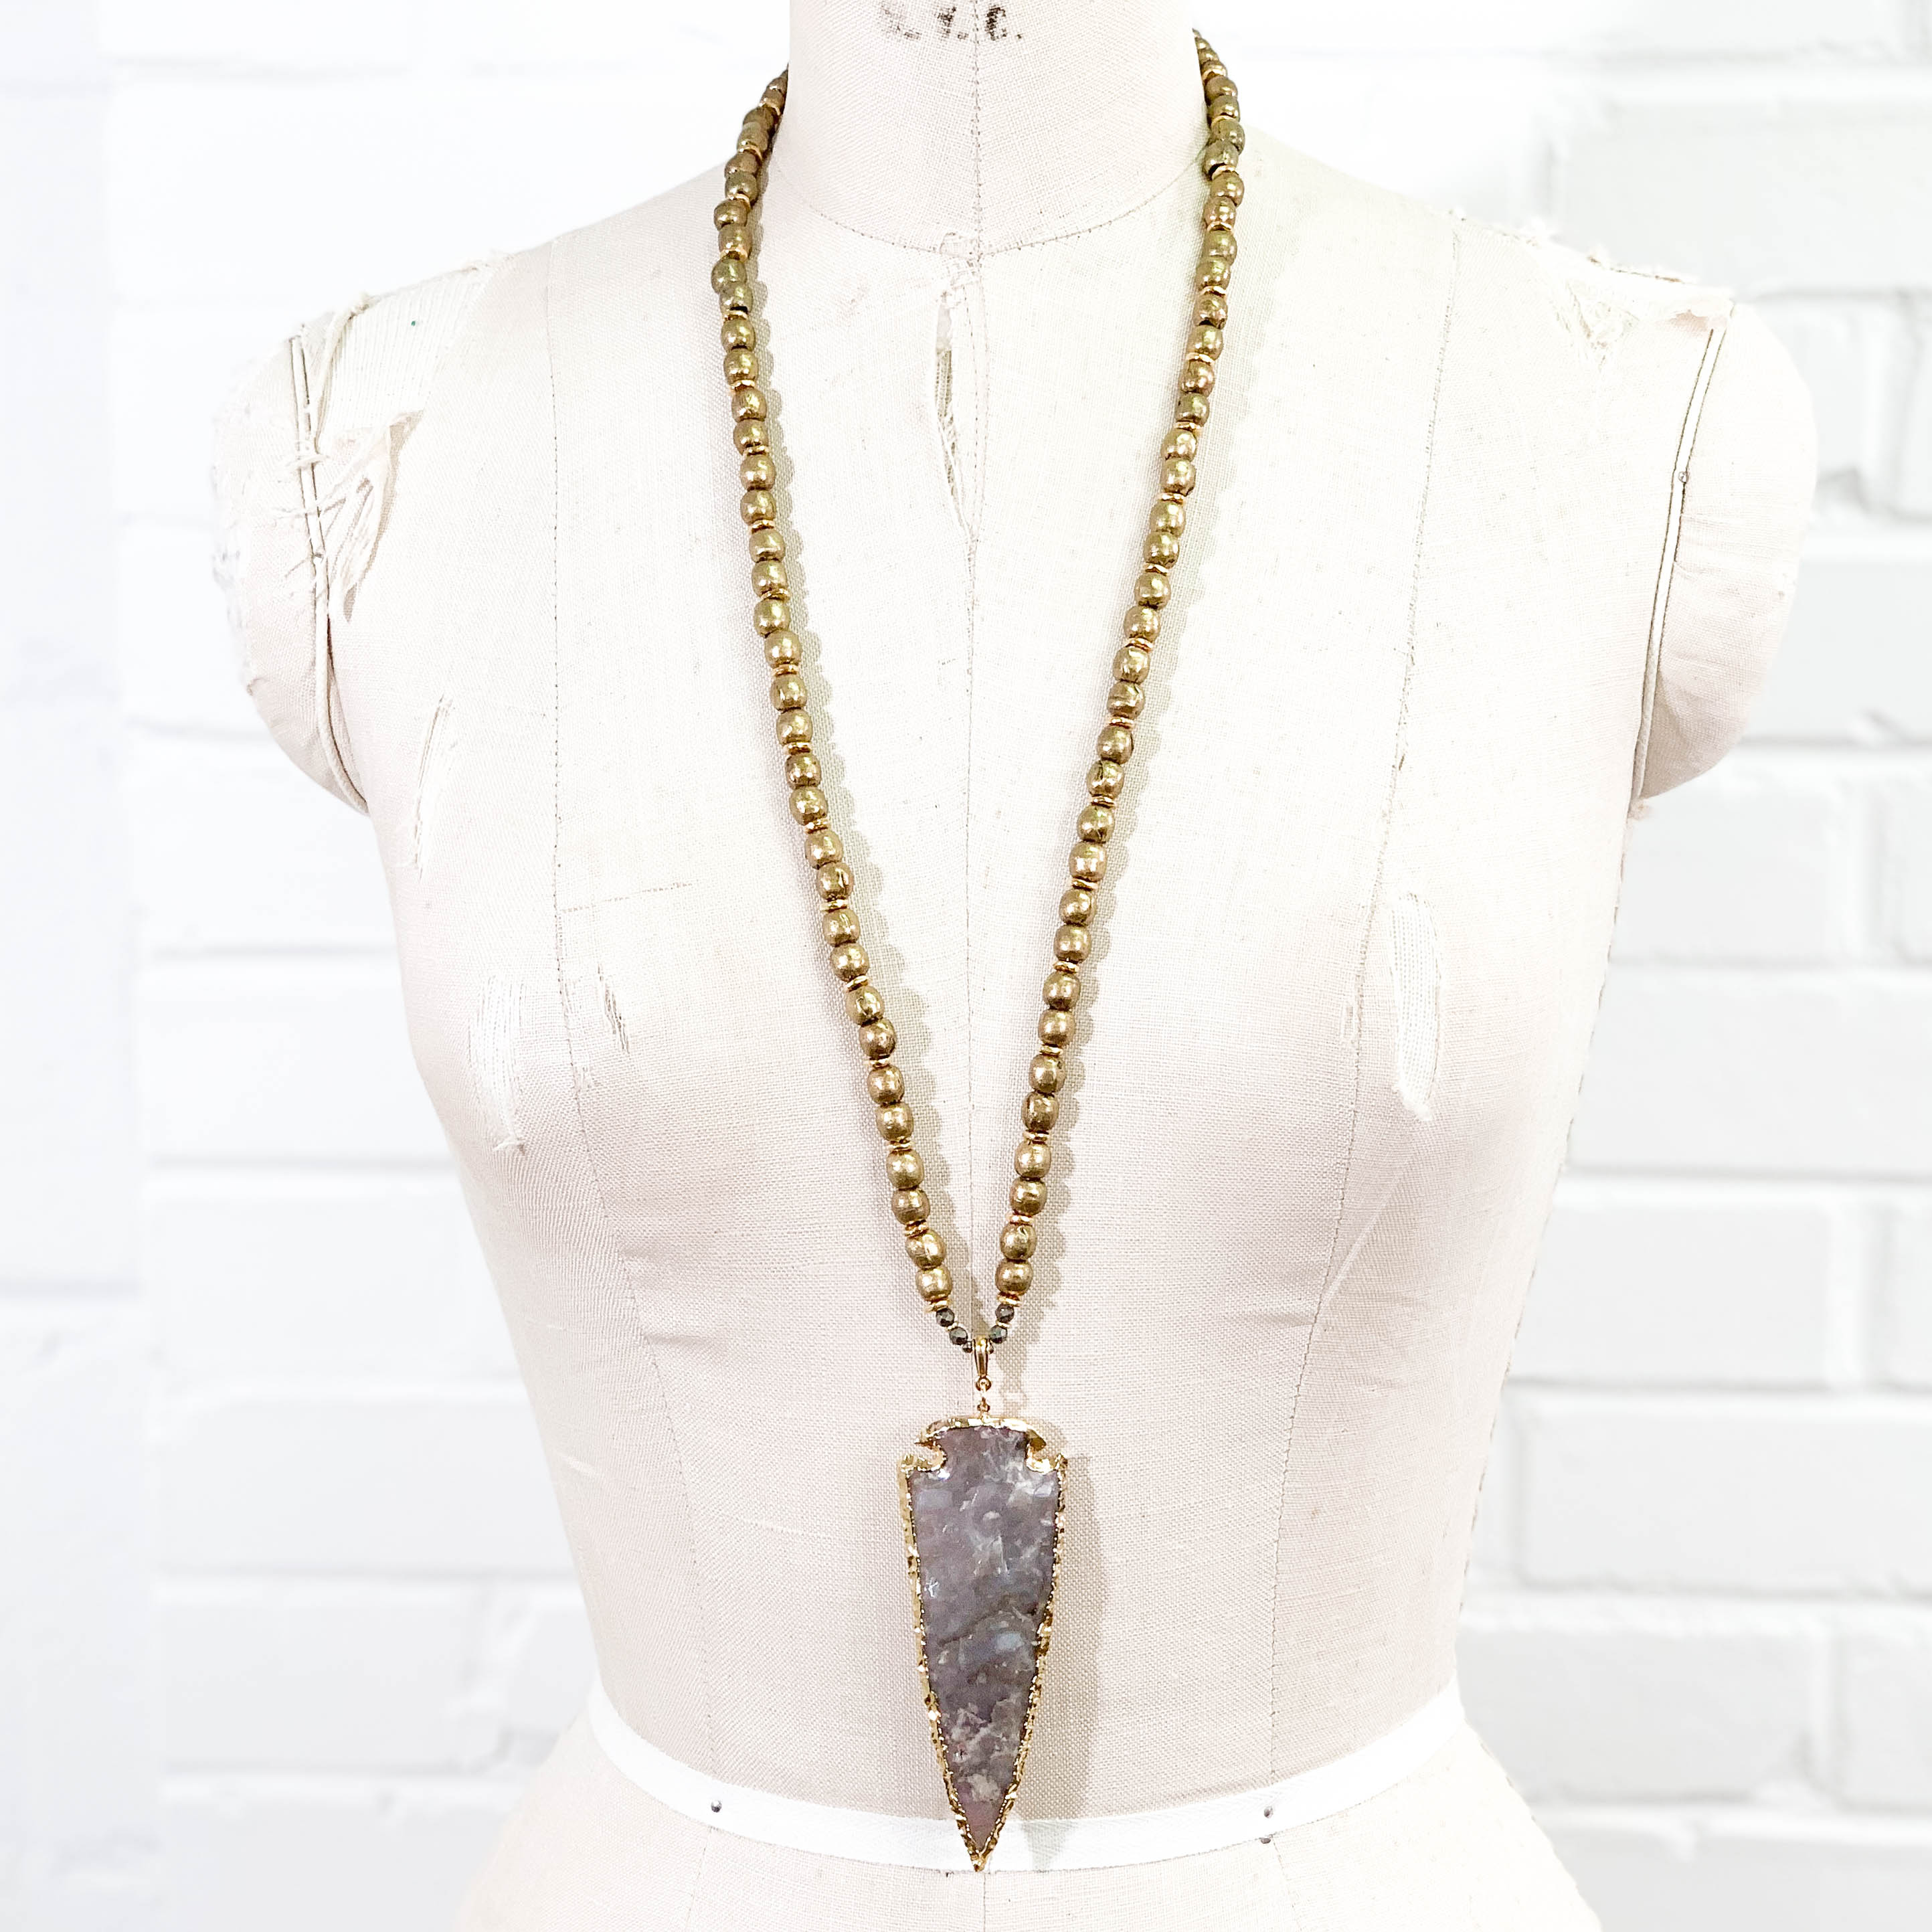 24k Gold Electroplated Jasper Arrowhead on Ethiopian Brass Bead Necklace